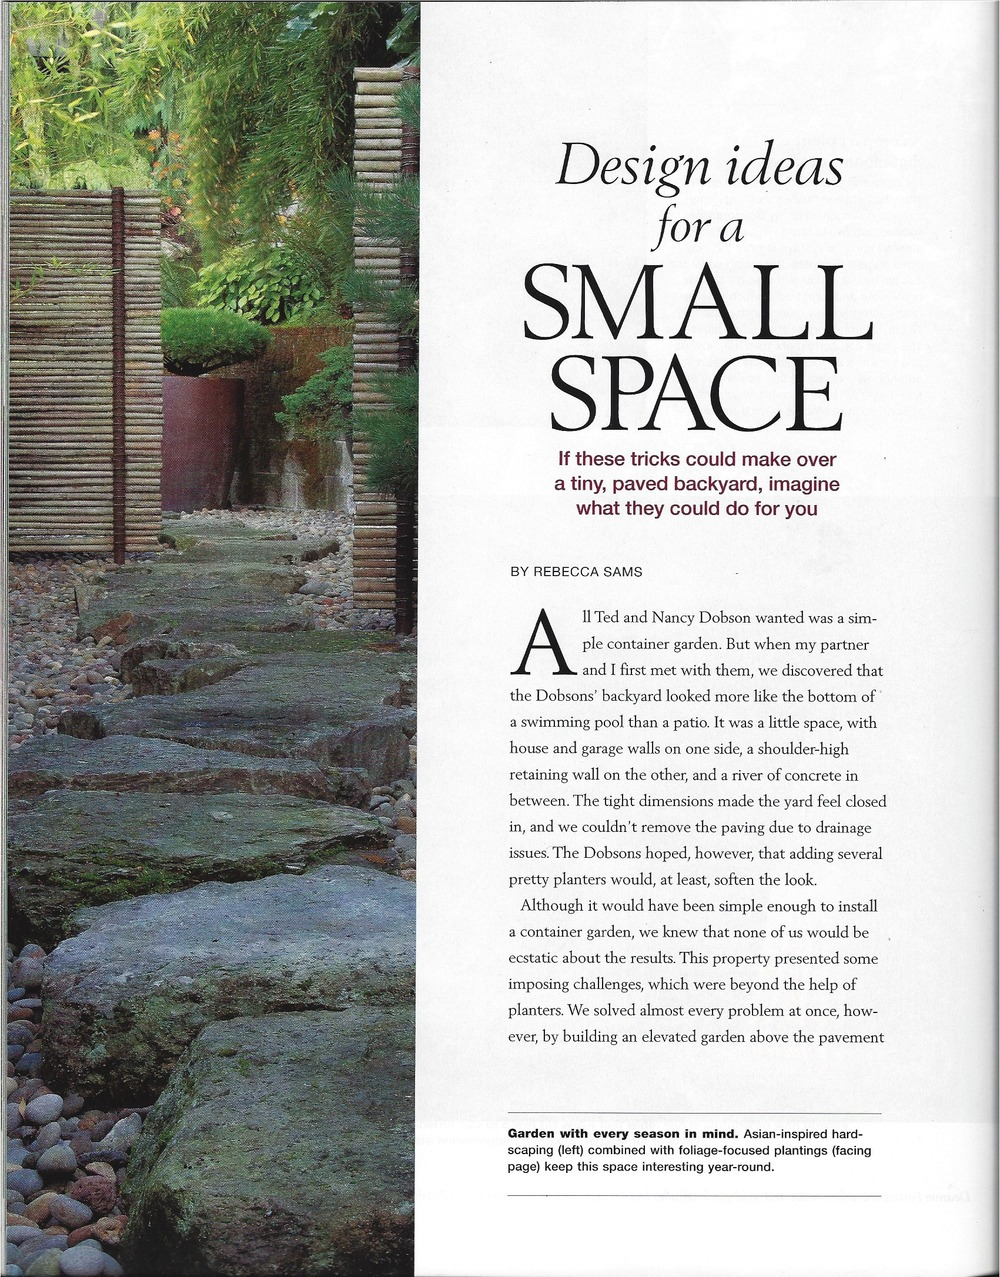 Fine Gardening 'Design Ideas for a Small Space' 2012